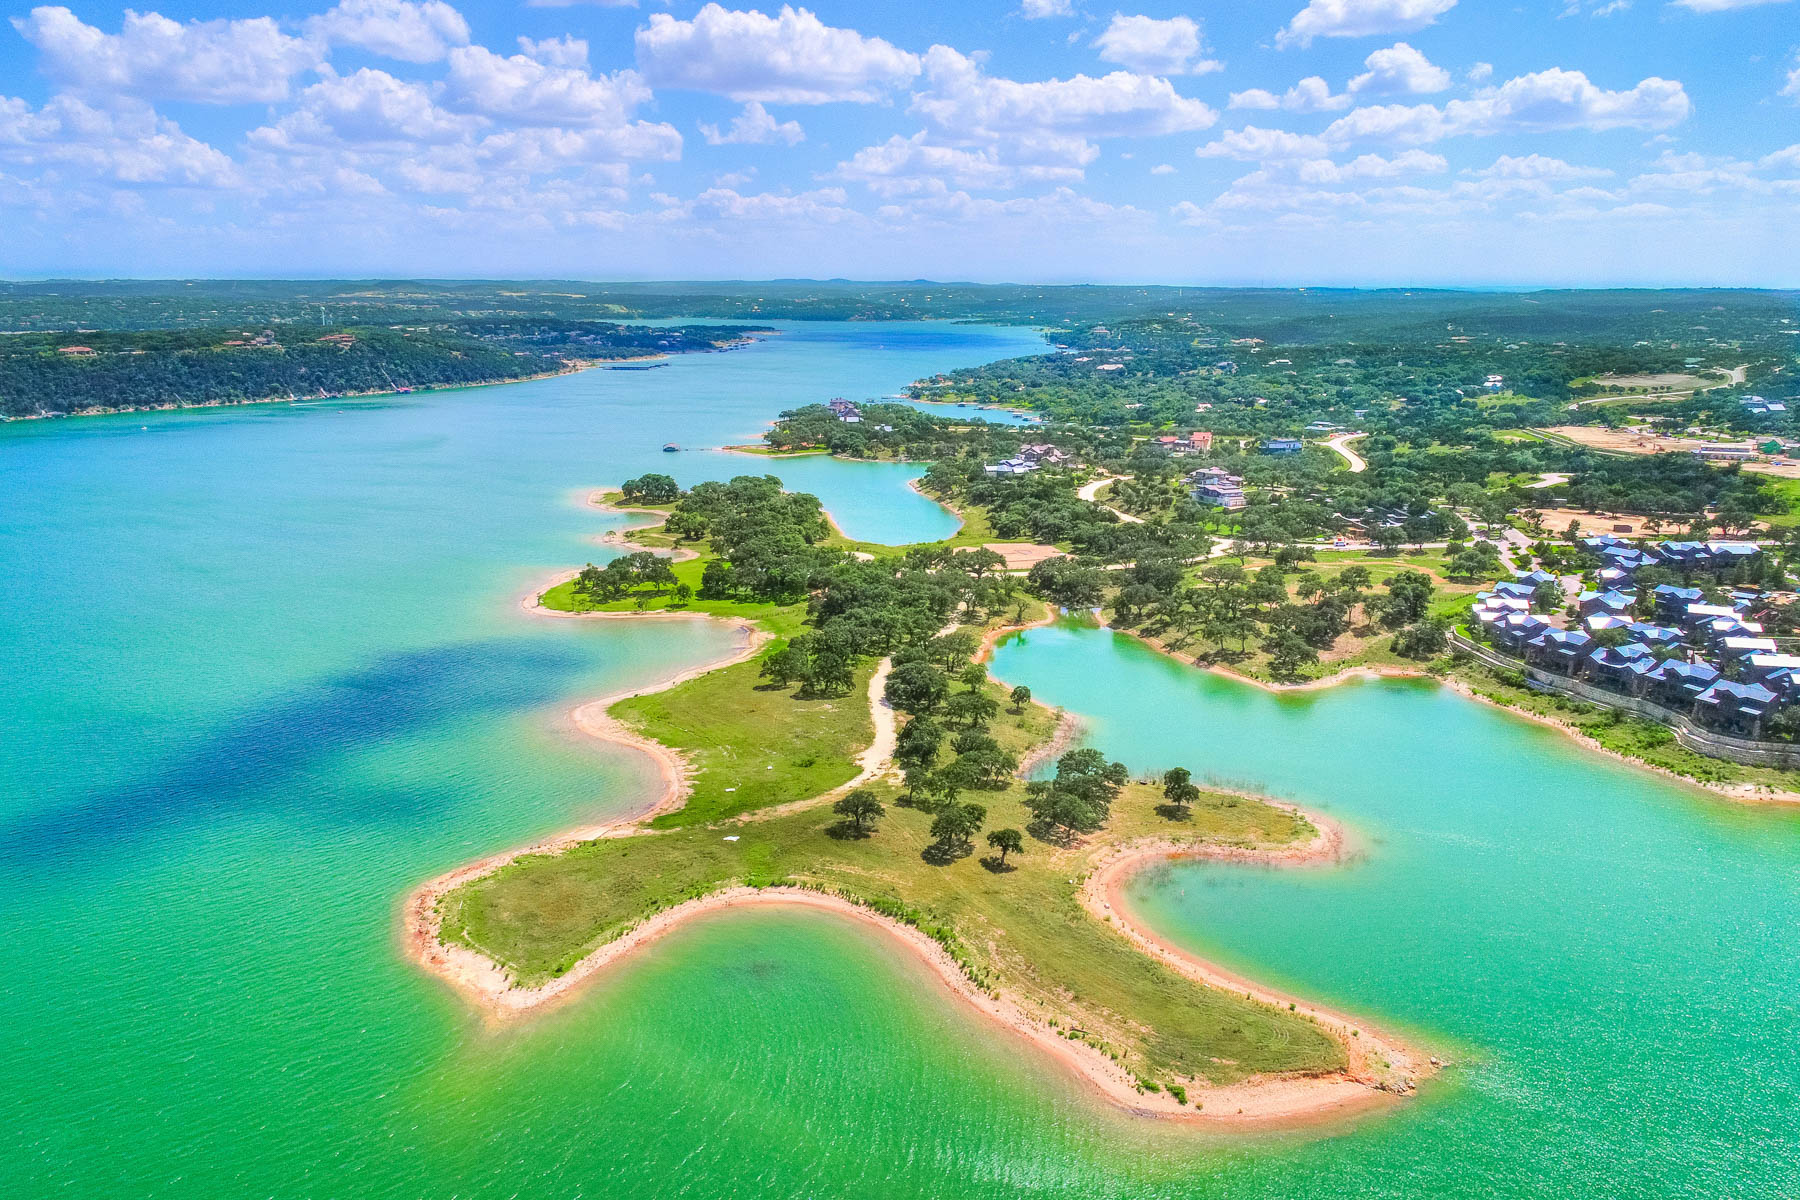 Land for Sale at The Reserve on Lake Travis: 12.24 Waterfront Acres 2200 Cypress Club Pointe, Spicewood, Texas, 78669 United States